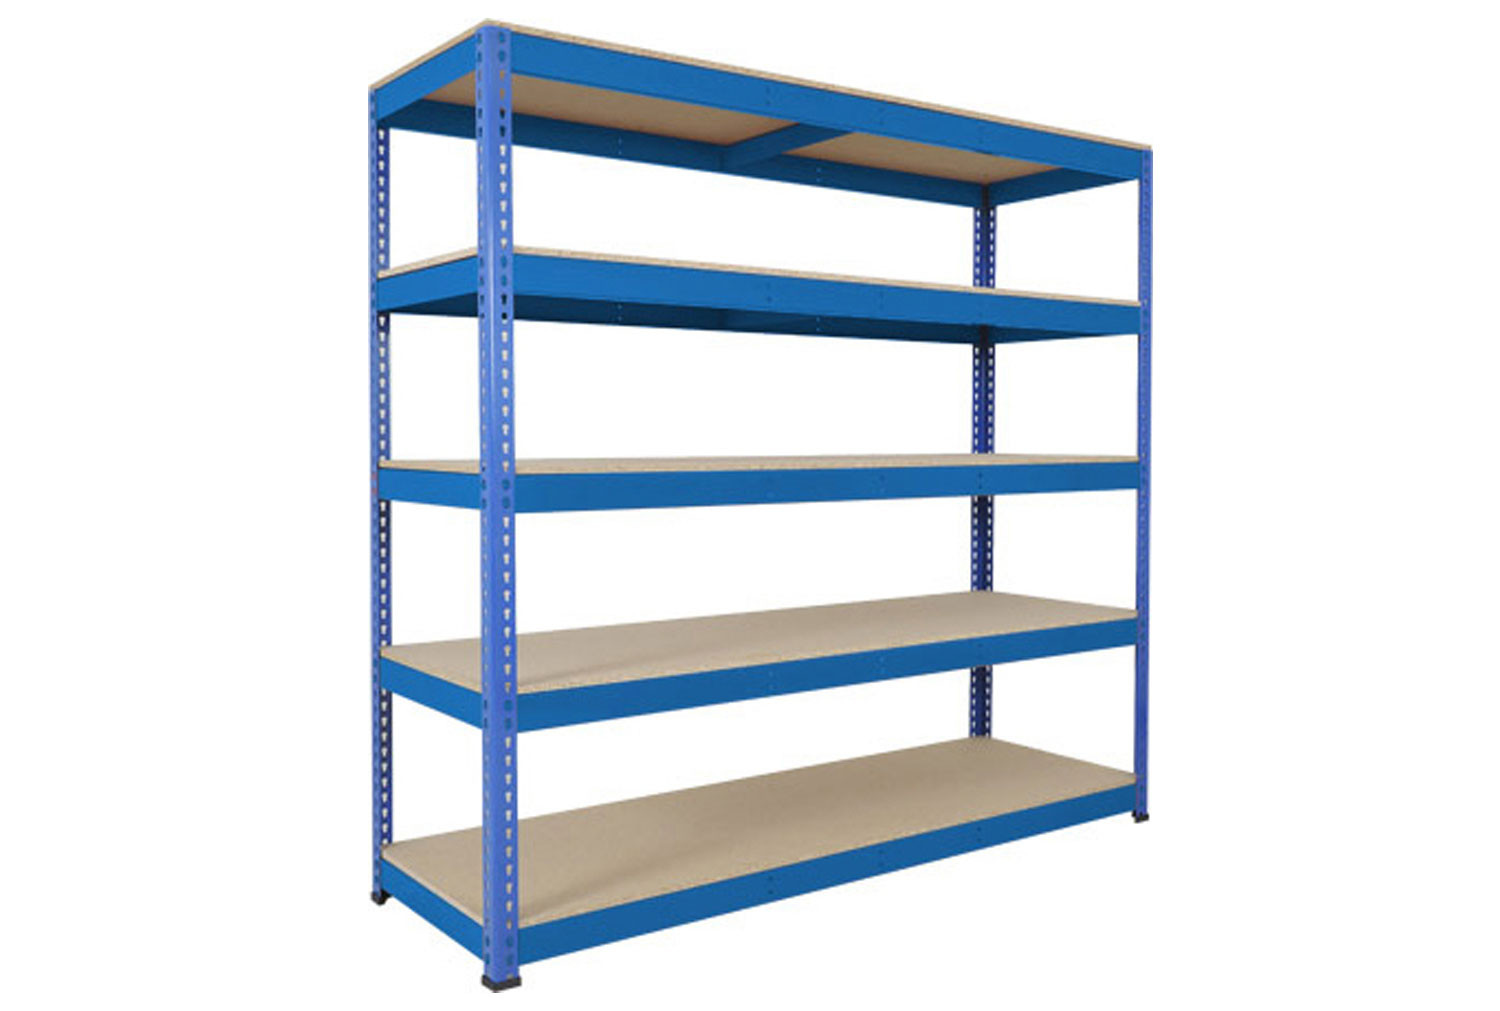 Rapid 1 Heavy Duty Shelving With 5 Chipboard Shelves 2134wx1980h (Blue)